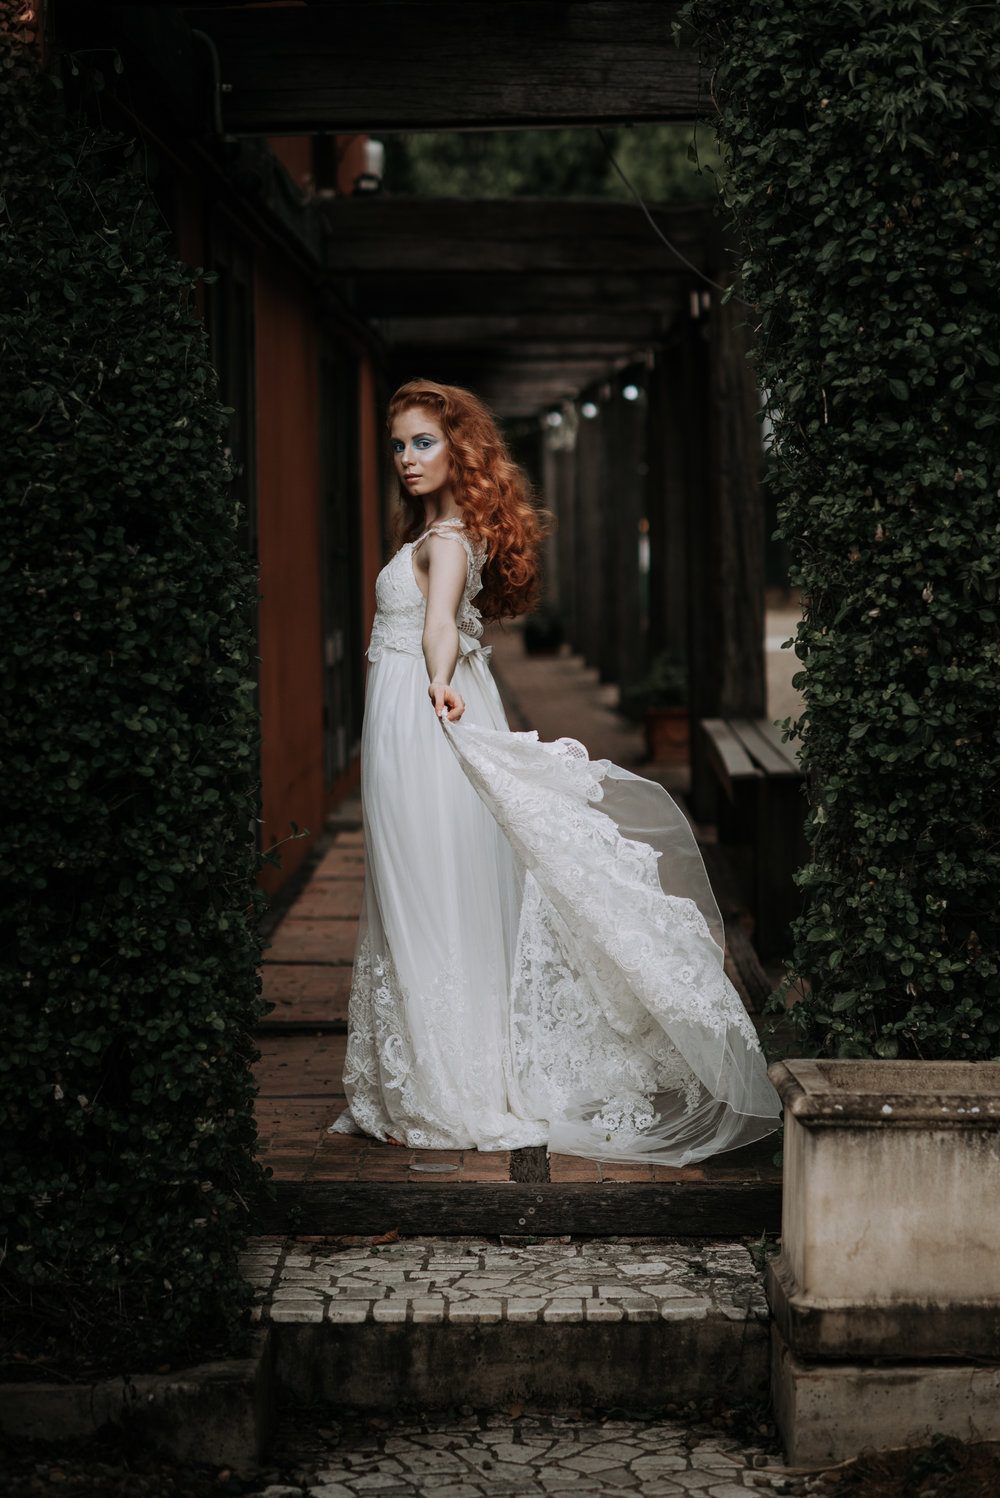 LOVELENSCAPES PHOTOGRAPHY X ANNA CAMPBELL BRIDAL X LEMAE MAKEUP ARTISTRY X BLOOMING LOVELY BOUQUETS X ERIN LIGHTFOOT X LITTLE WHITE COUTURE • 7.jpg